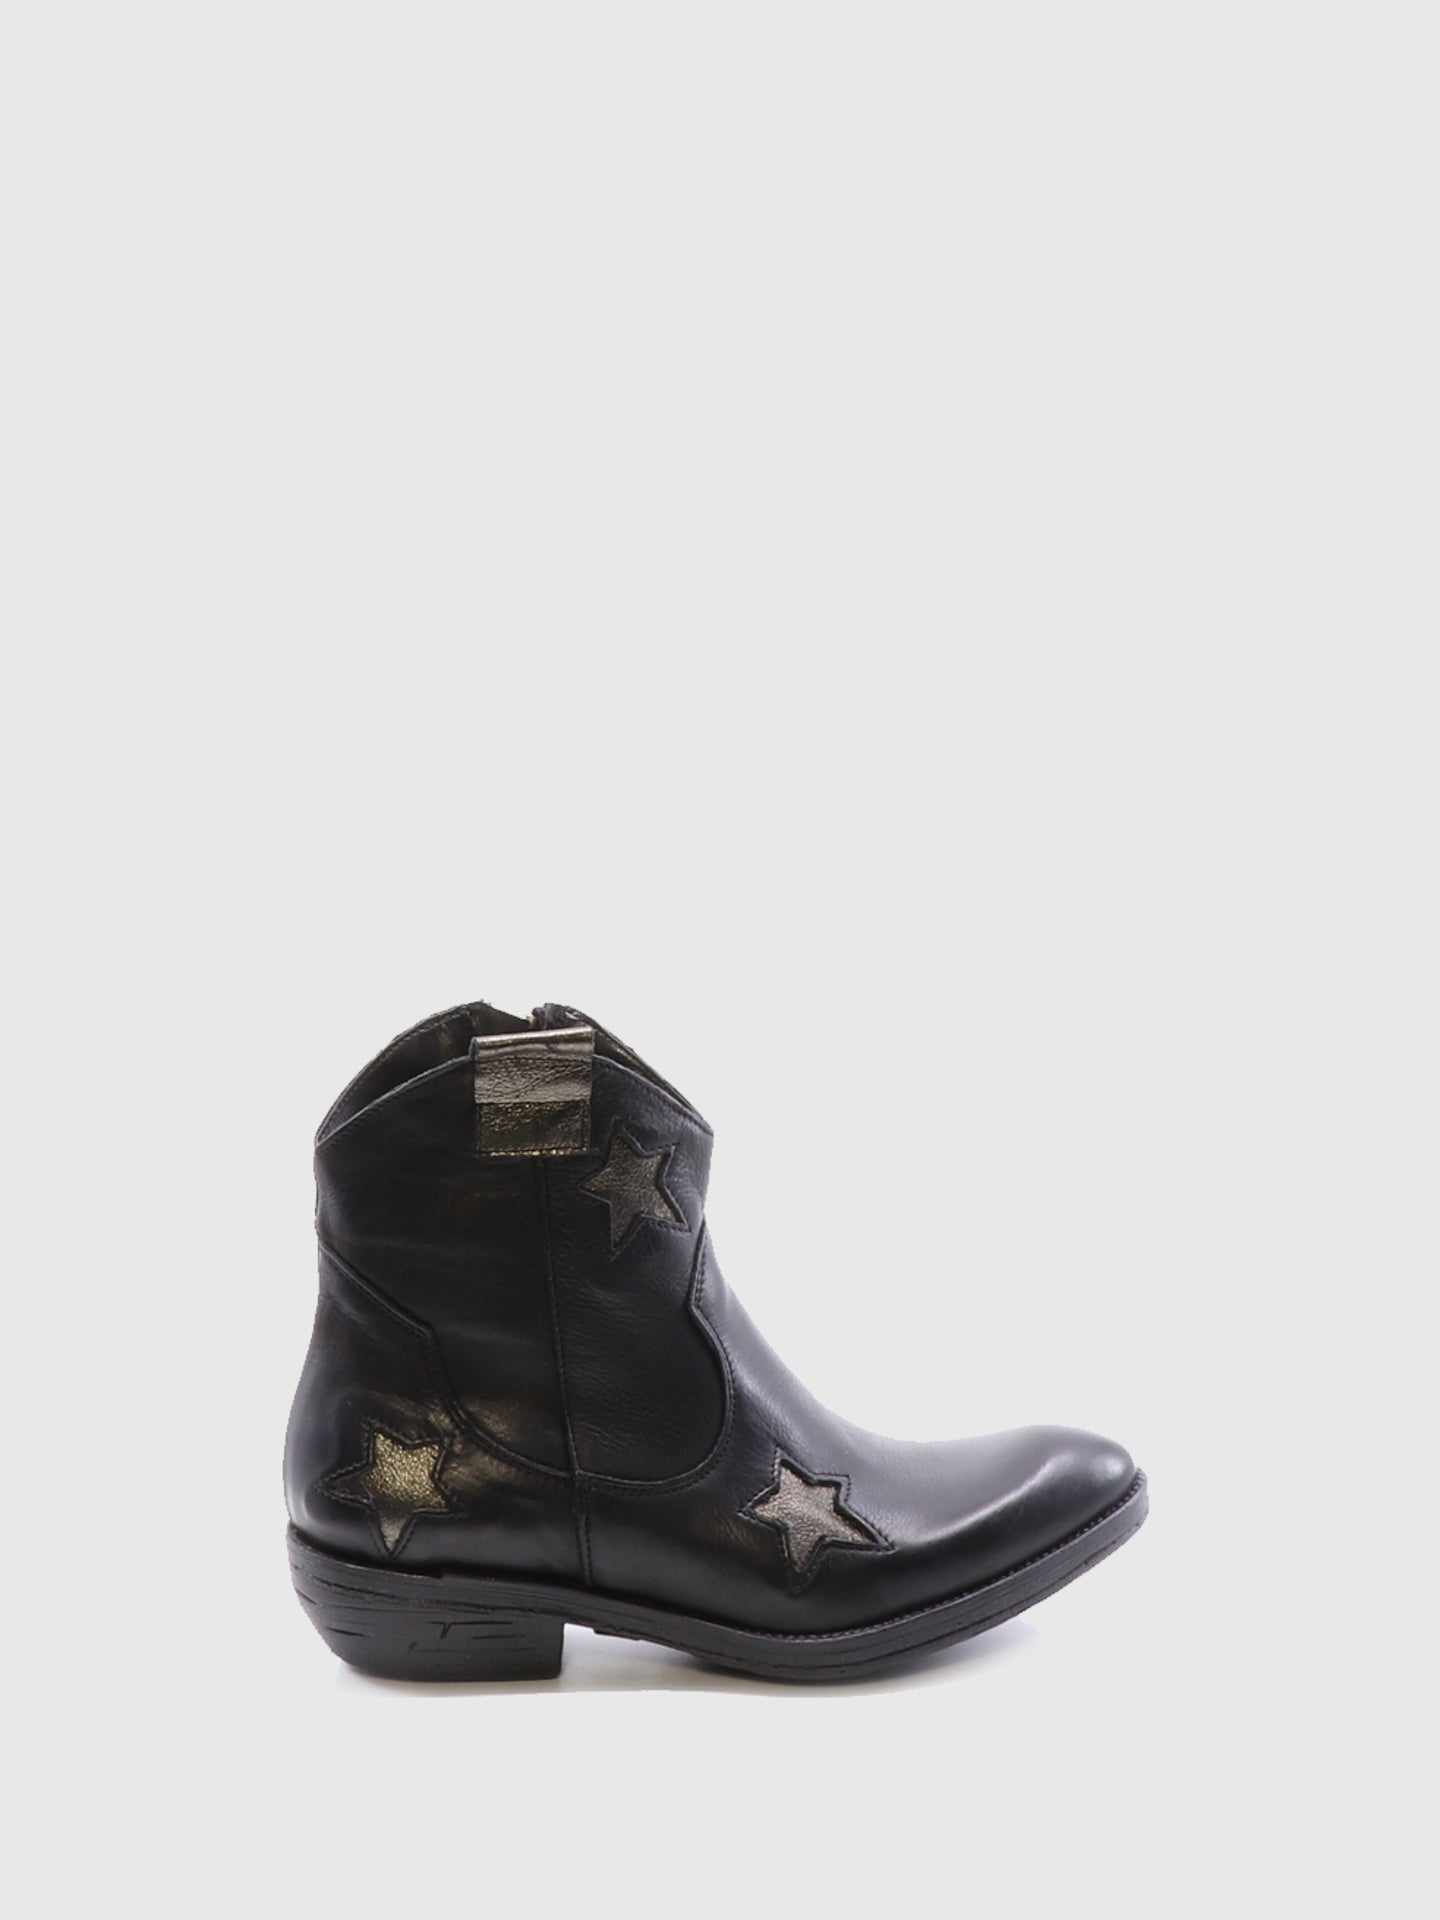 Bos&Co Black Cowboy Ankle Boots